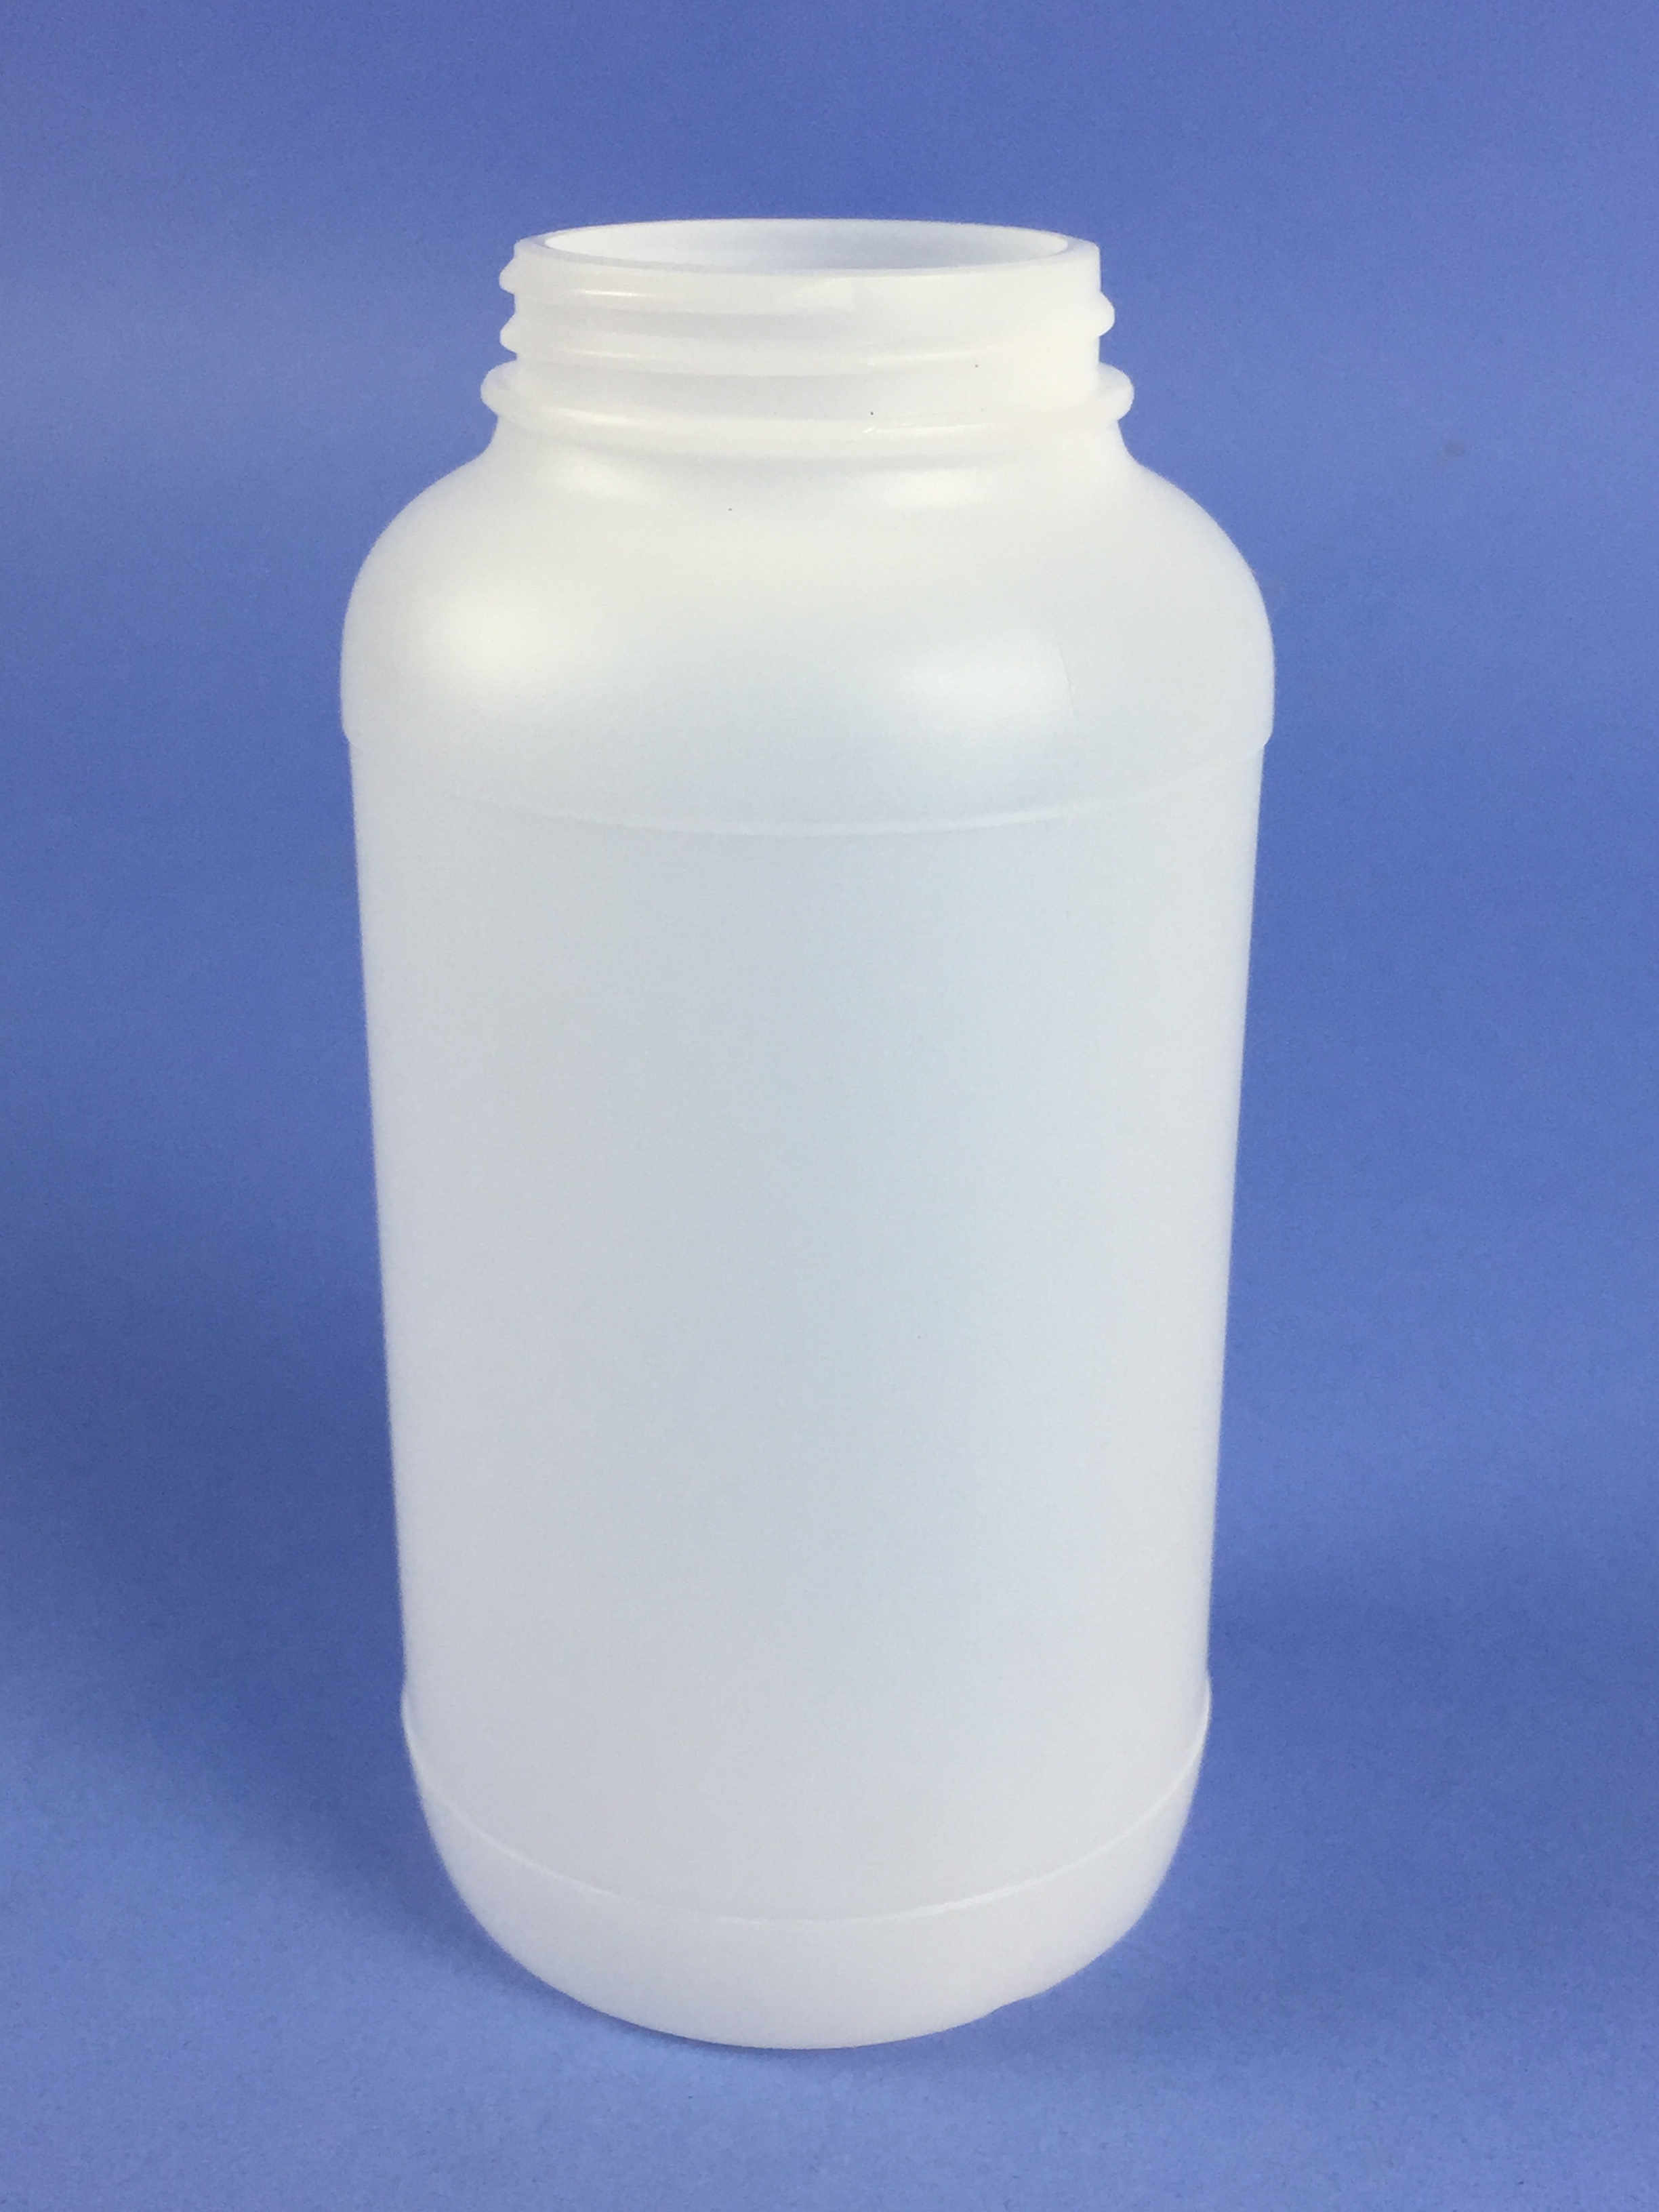 Plastic Hdpe Bottle 500ml Wide Neck Bottle Wn6 Bristol